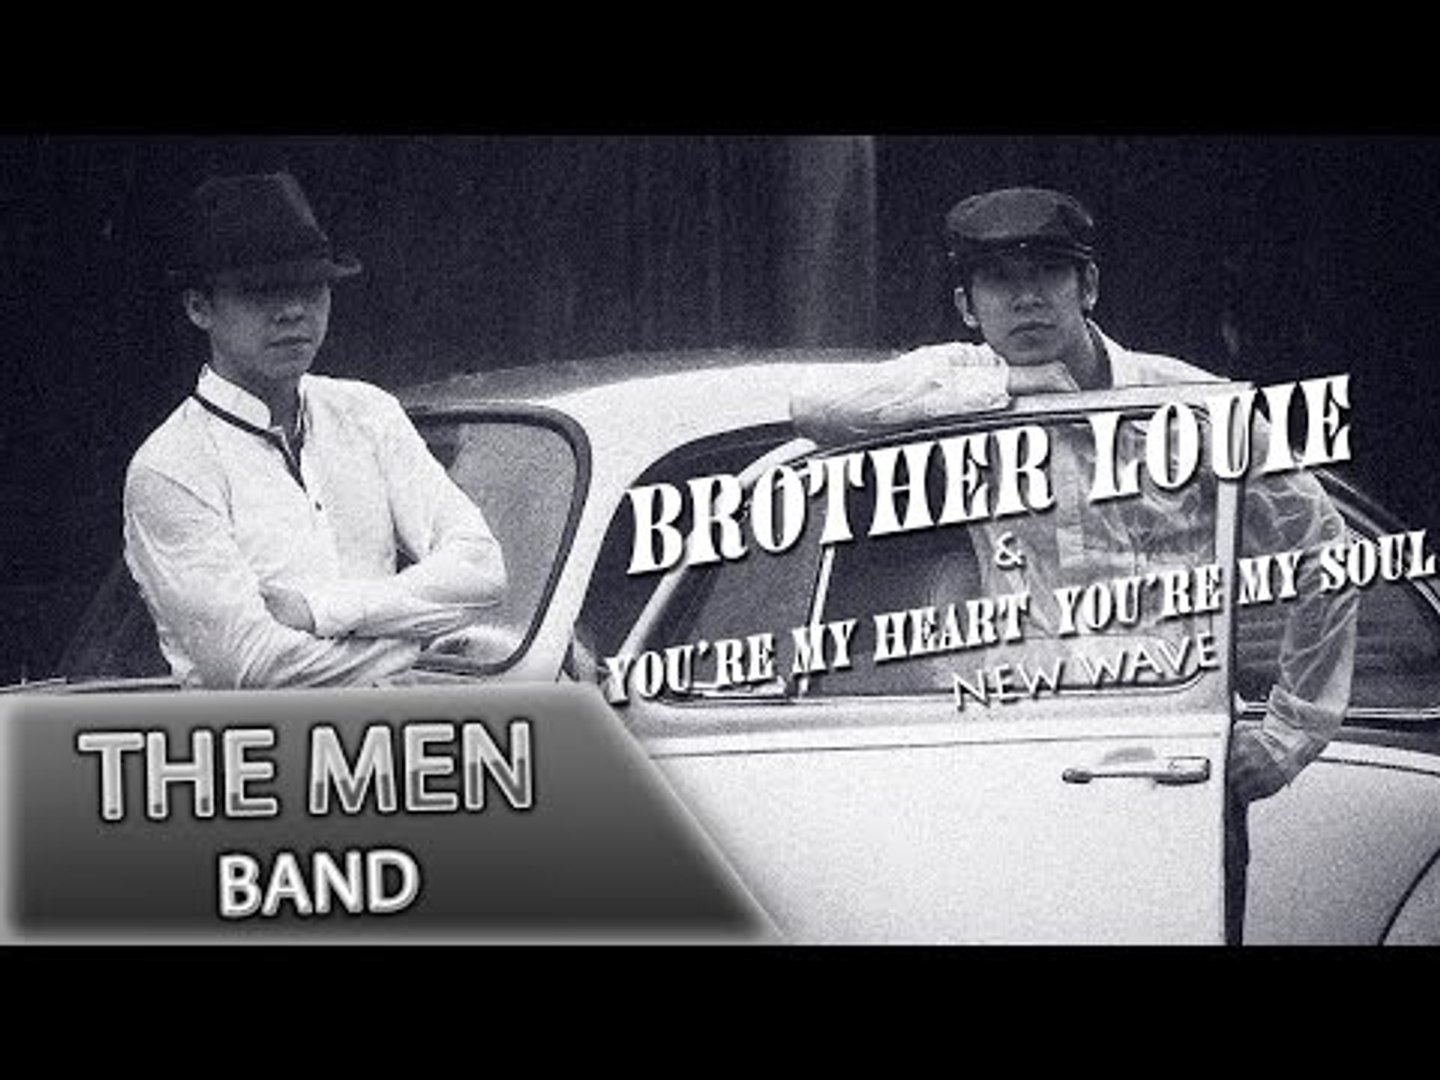 The Men -  LK Brother Louie, You're My Heart You're My Soul (Remix) (Official Audio)